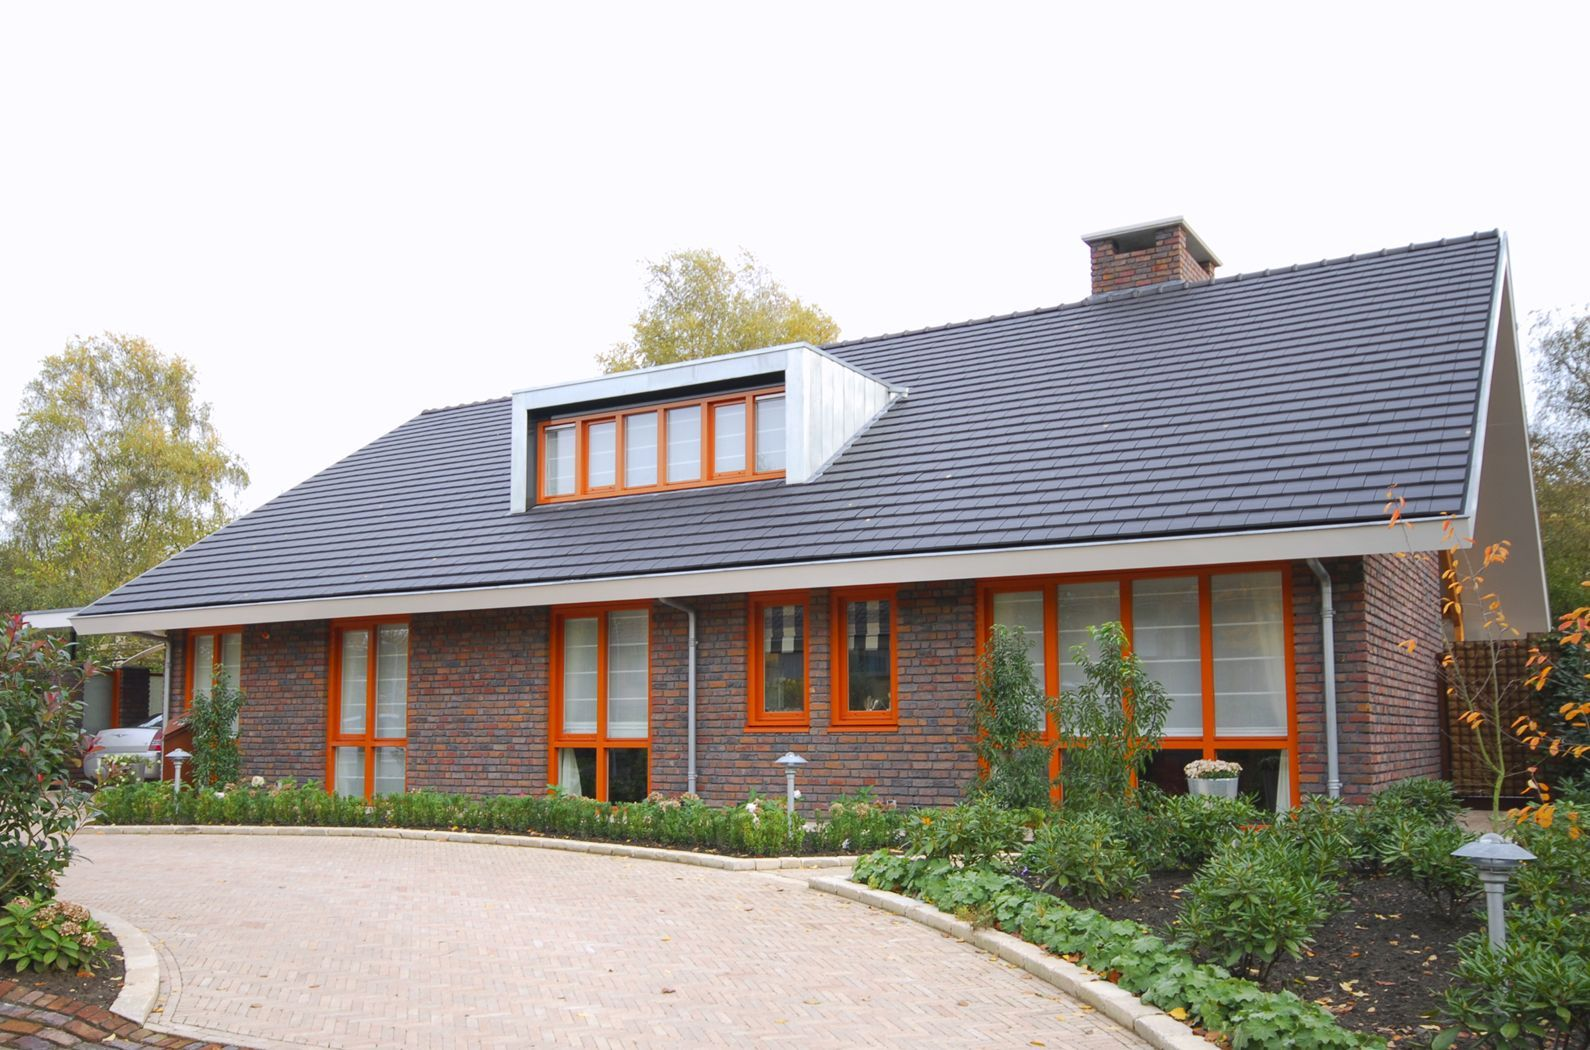 Modern Detached House Overhanging Gable Roof Bricks Walls